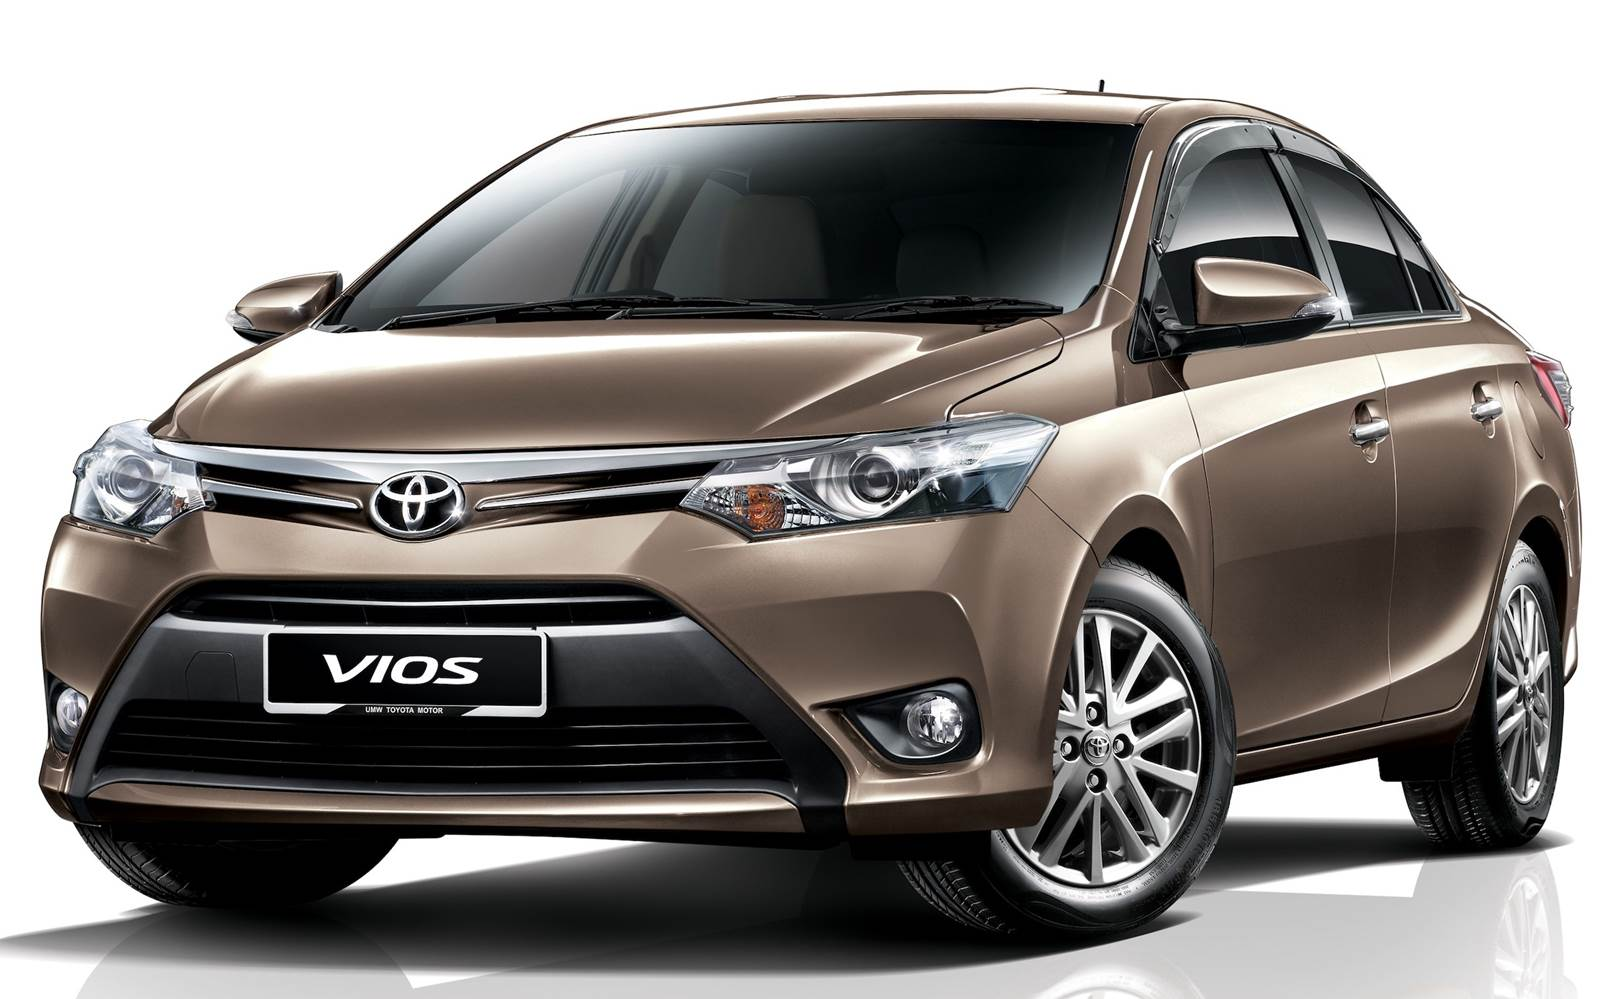 Toyota Vios Exterior Image Gallery Pictures Photos